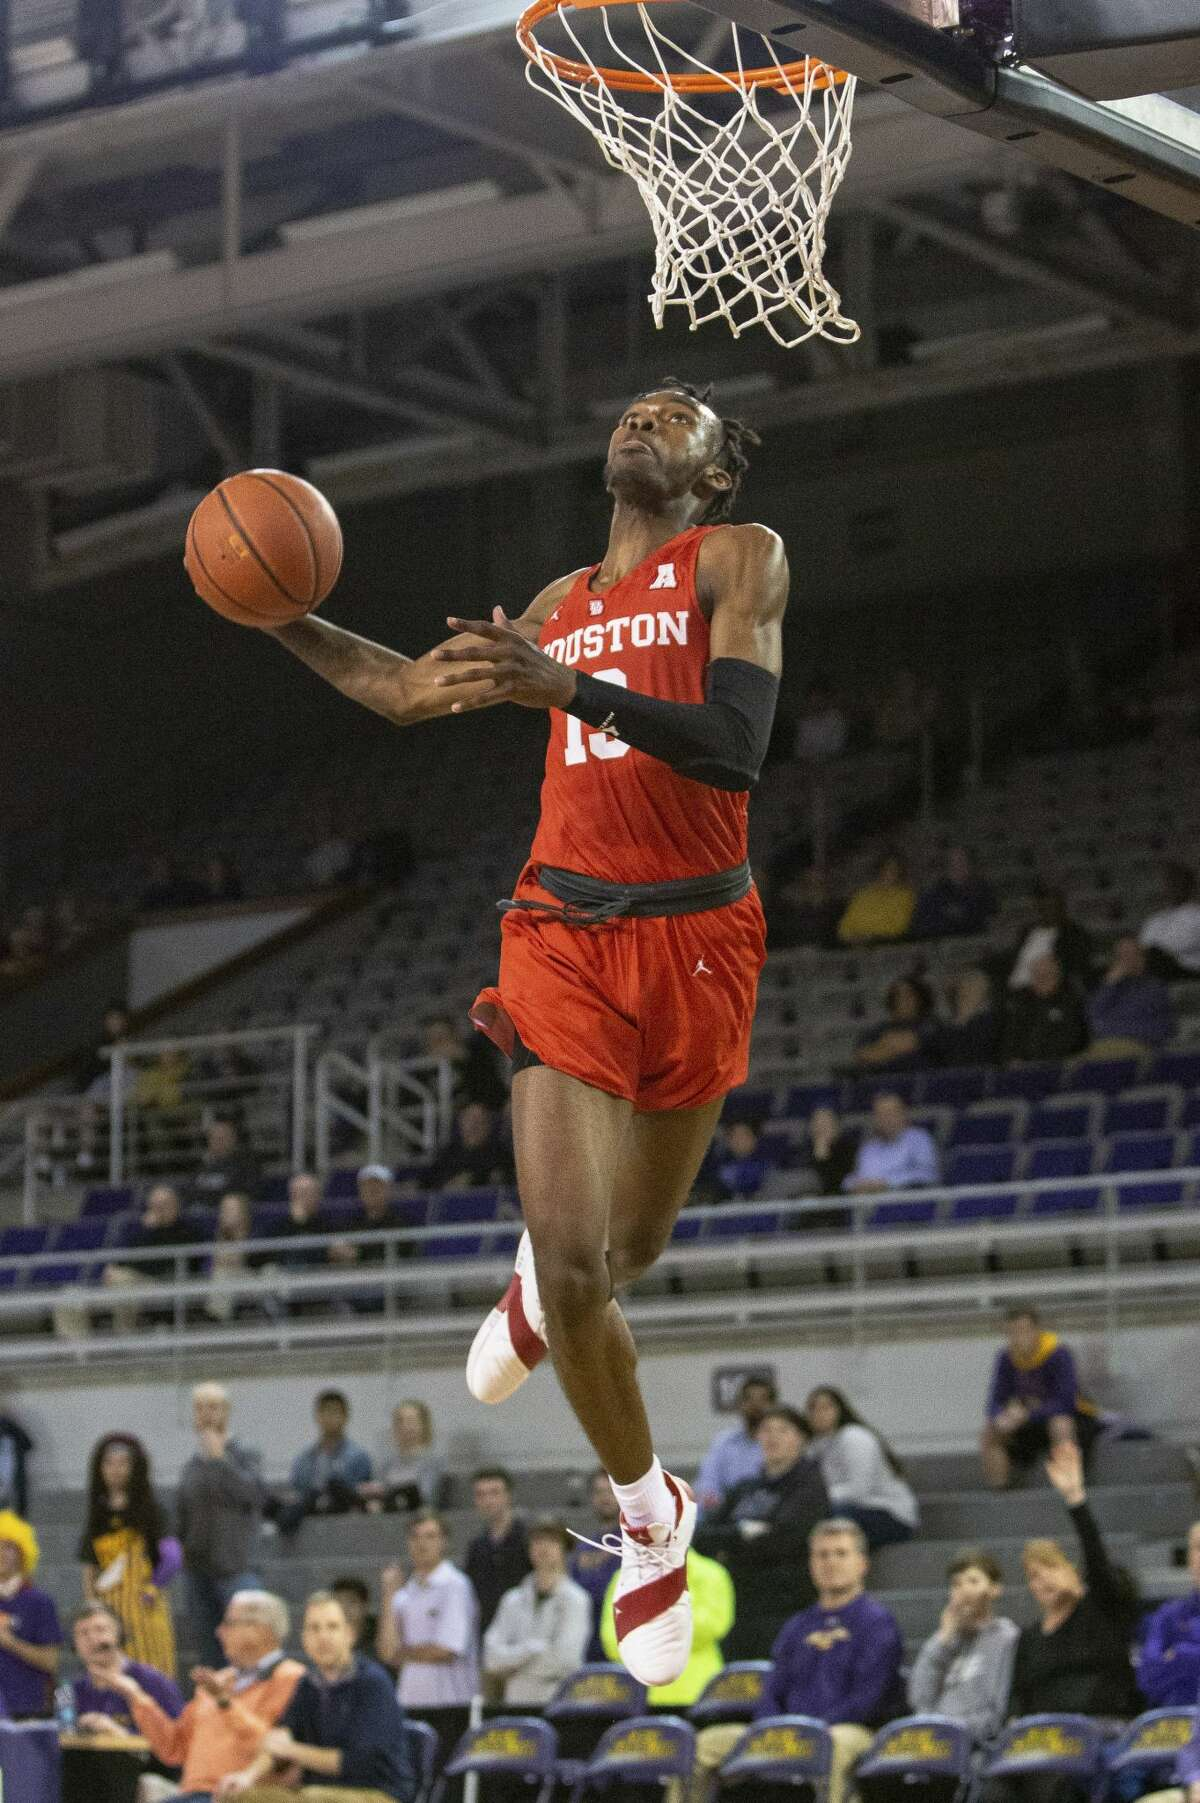 Houston's DeJon Jarreau (13) jumps for a dunk during the second half of an NCAA college basketball game against East Carolina in Greenville, N.C., Wednesday, Feb. 27, 2019. (AP Photo/Ben McKeown)